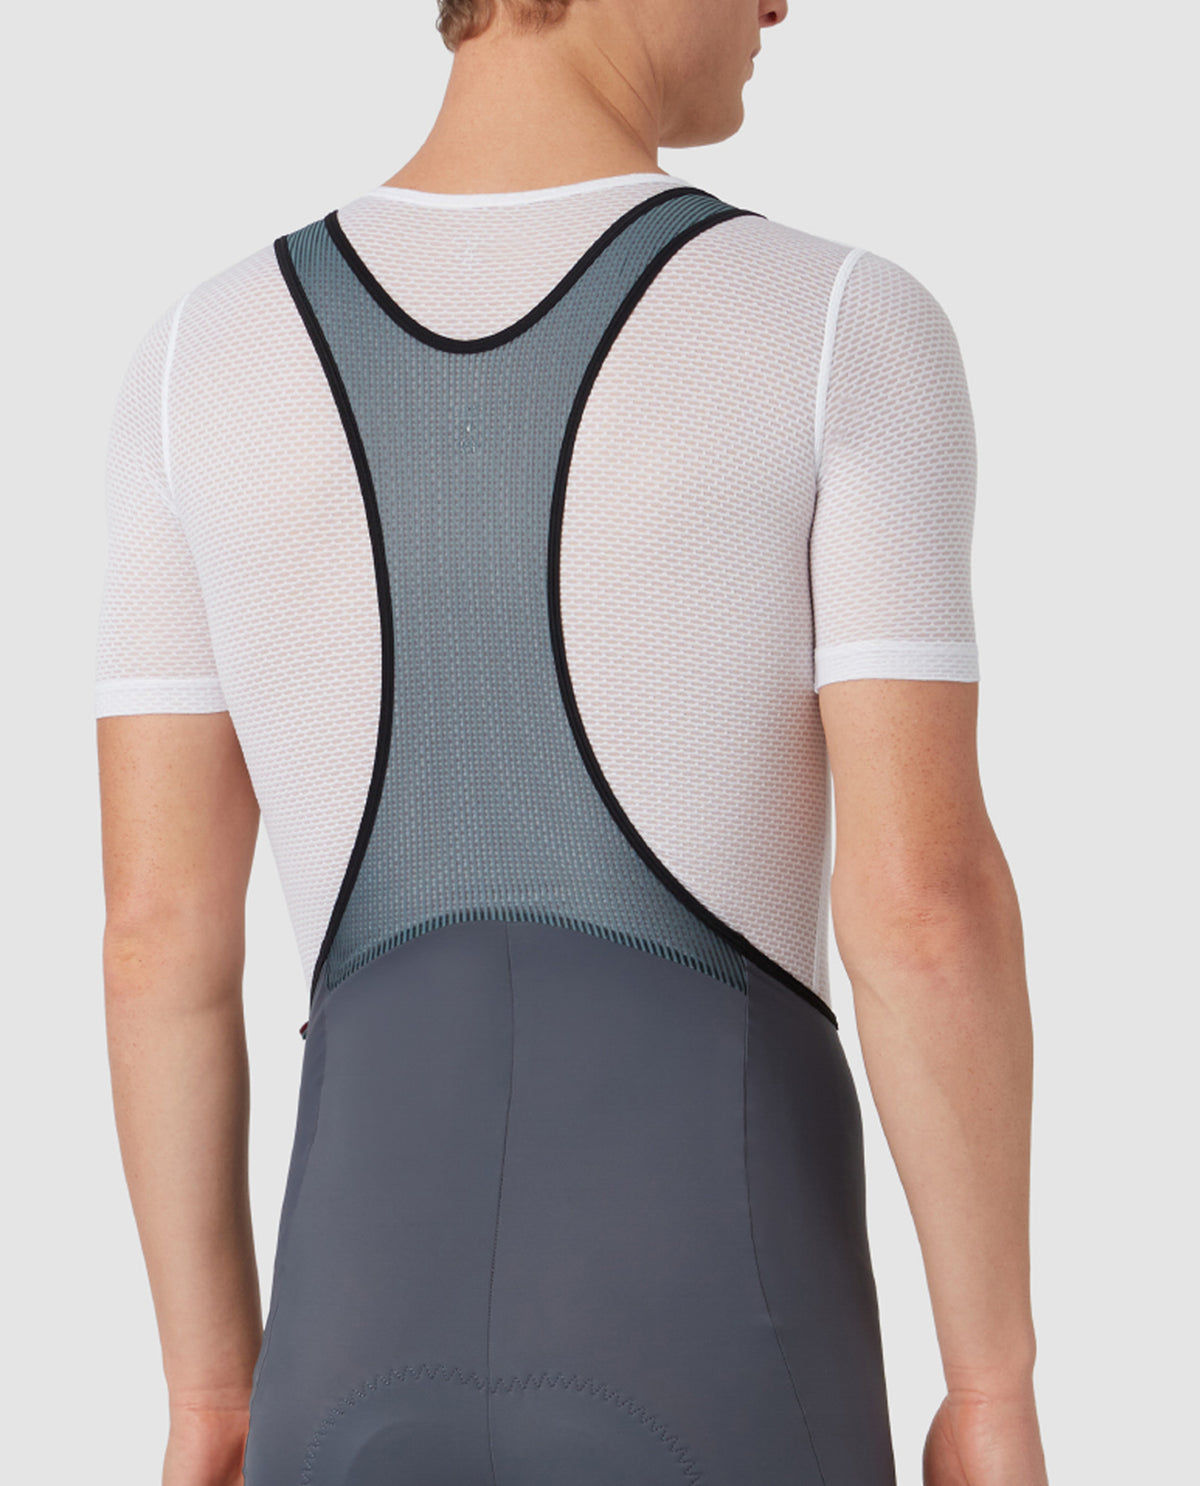 Club Bib Shorts Iron